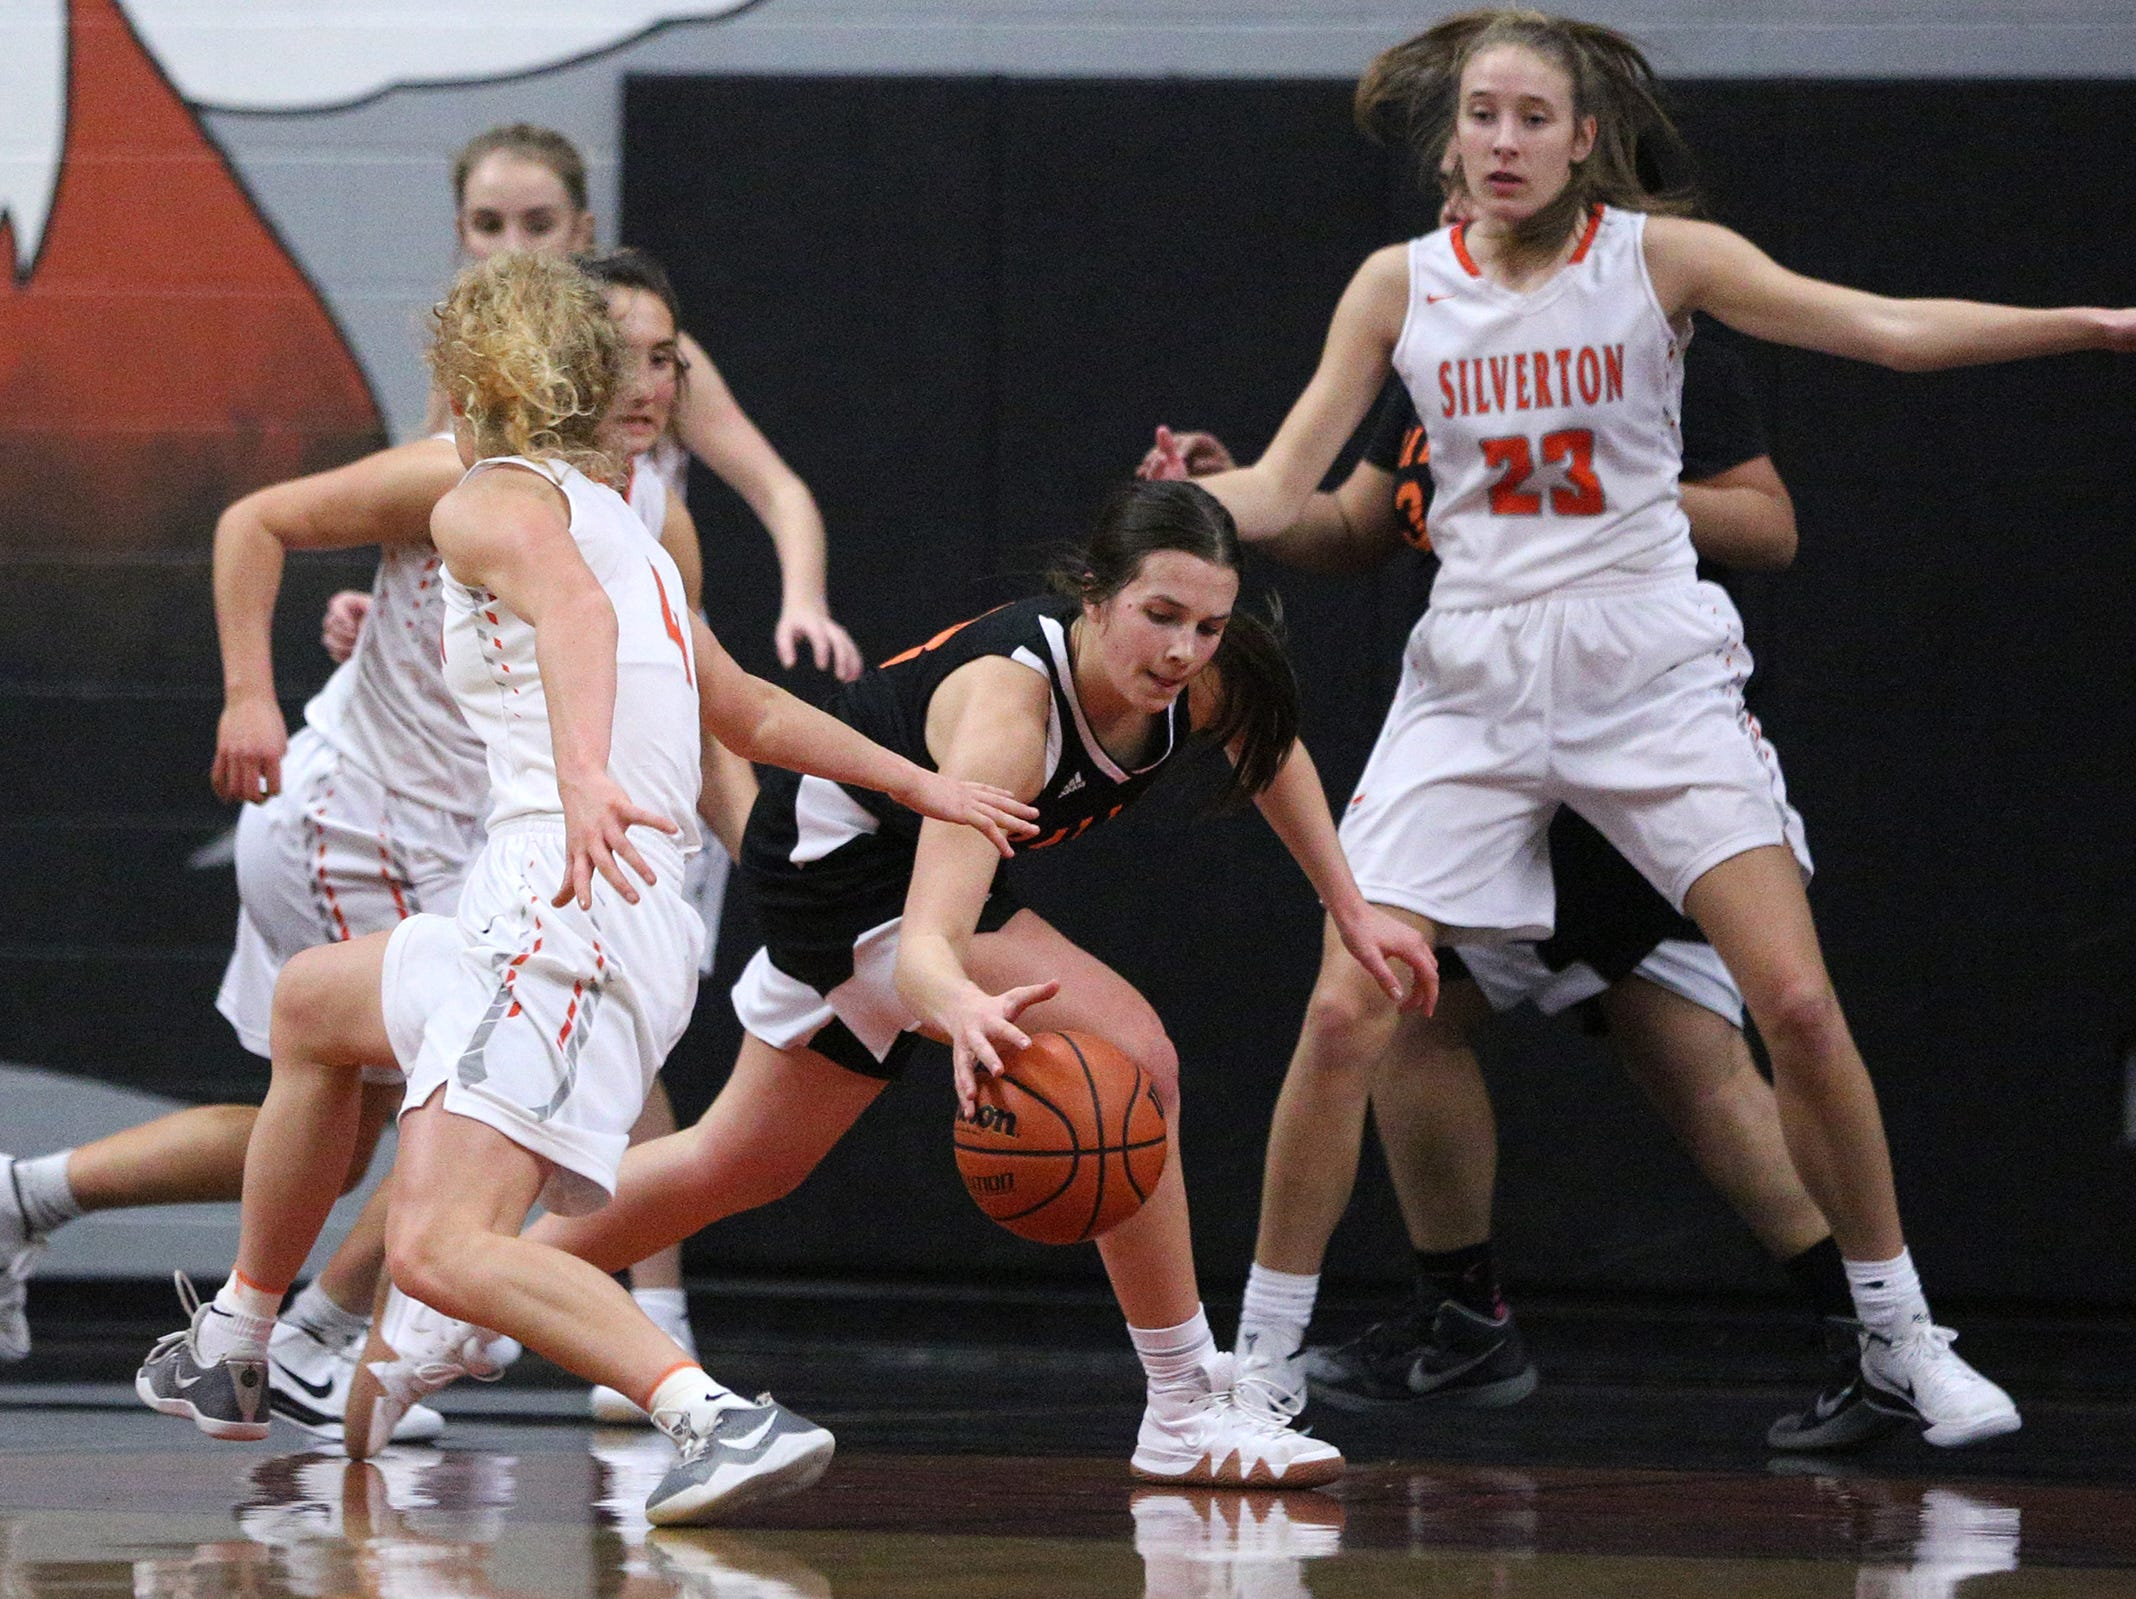 Dallas' Emma Classen (3) protects the ball during the Dallas High School vs. Silverton High School girls basketball game in Silverton on Tuesday, Dec. 8, 2019.